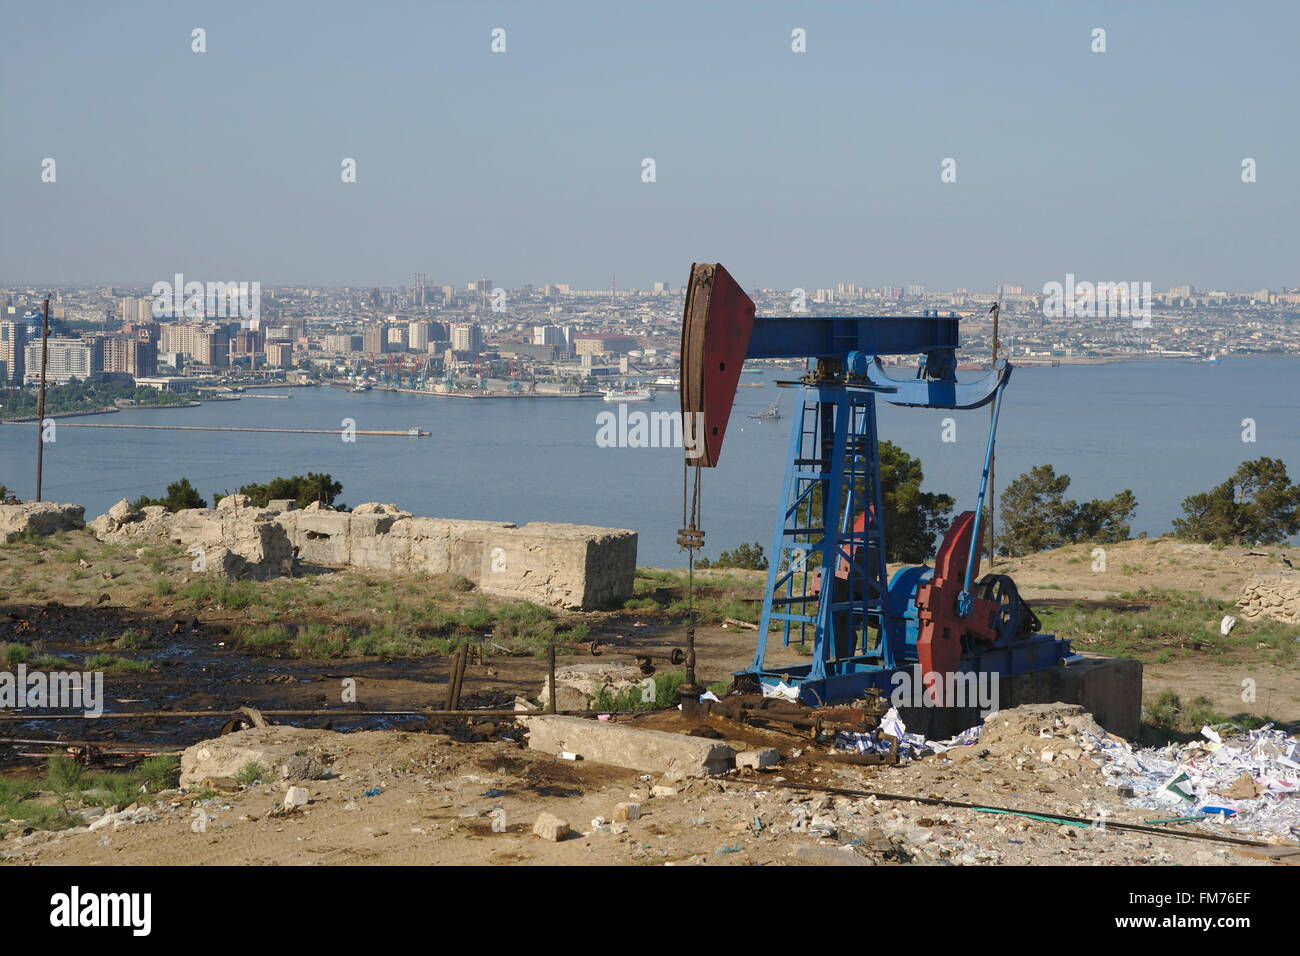 Petroleum pump in front of the city of Baku and the Caspian Sea, Azerbaijan - Stock Image